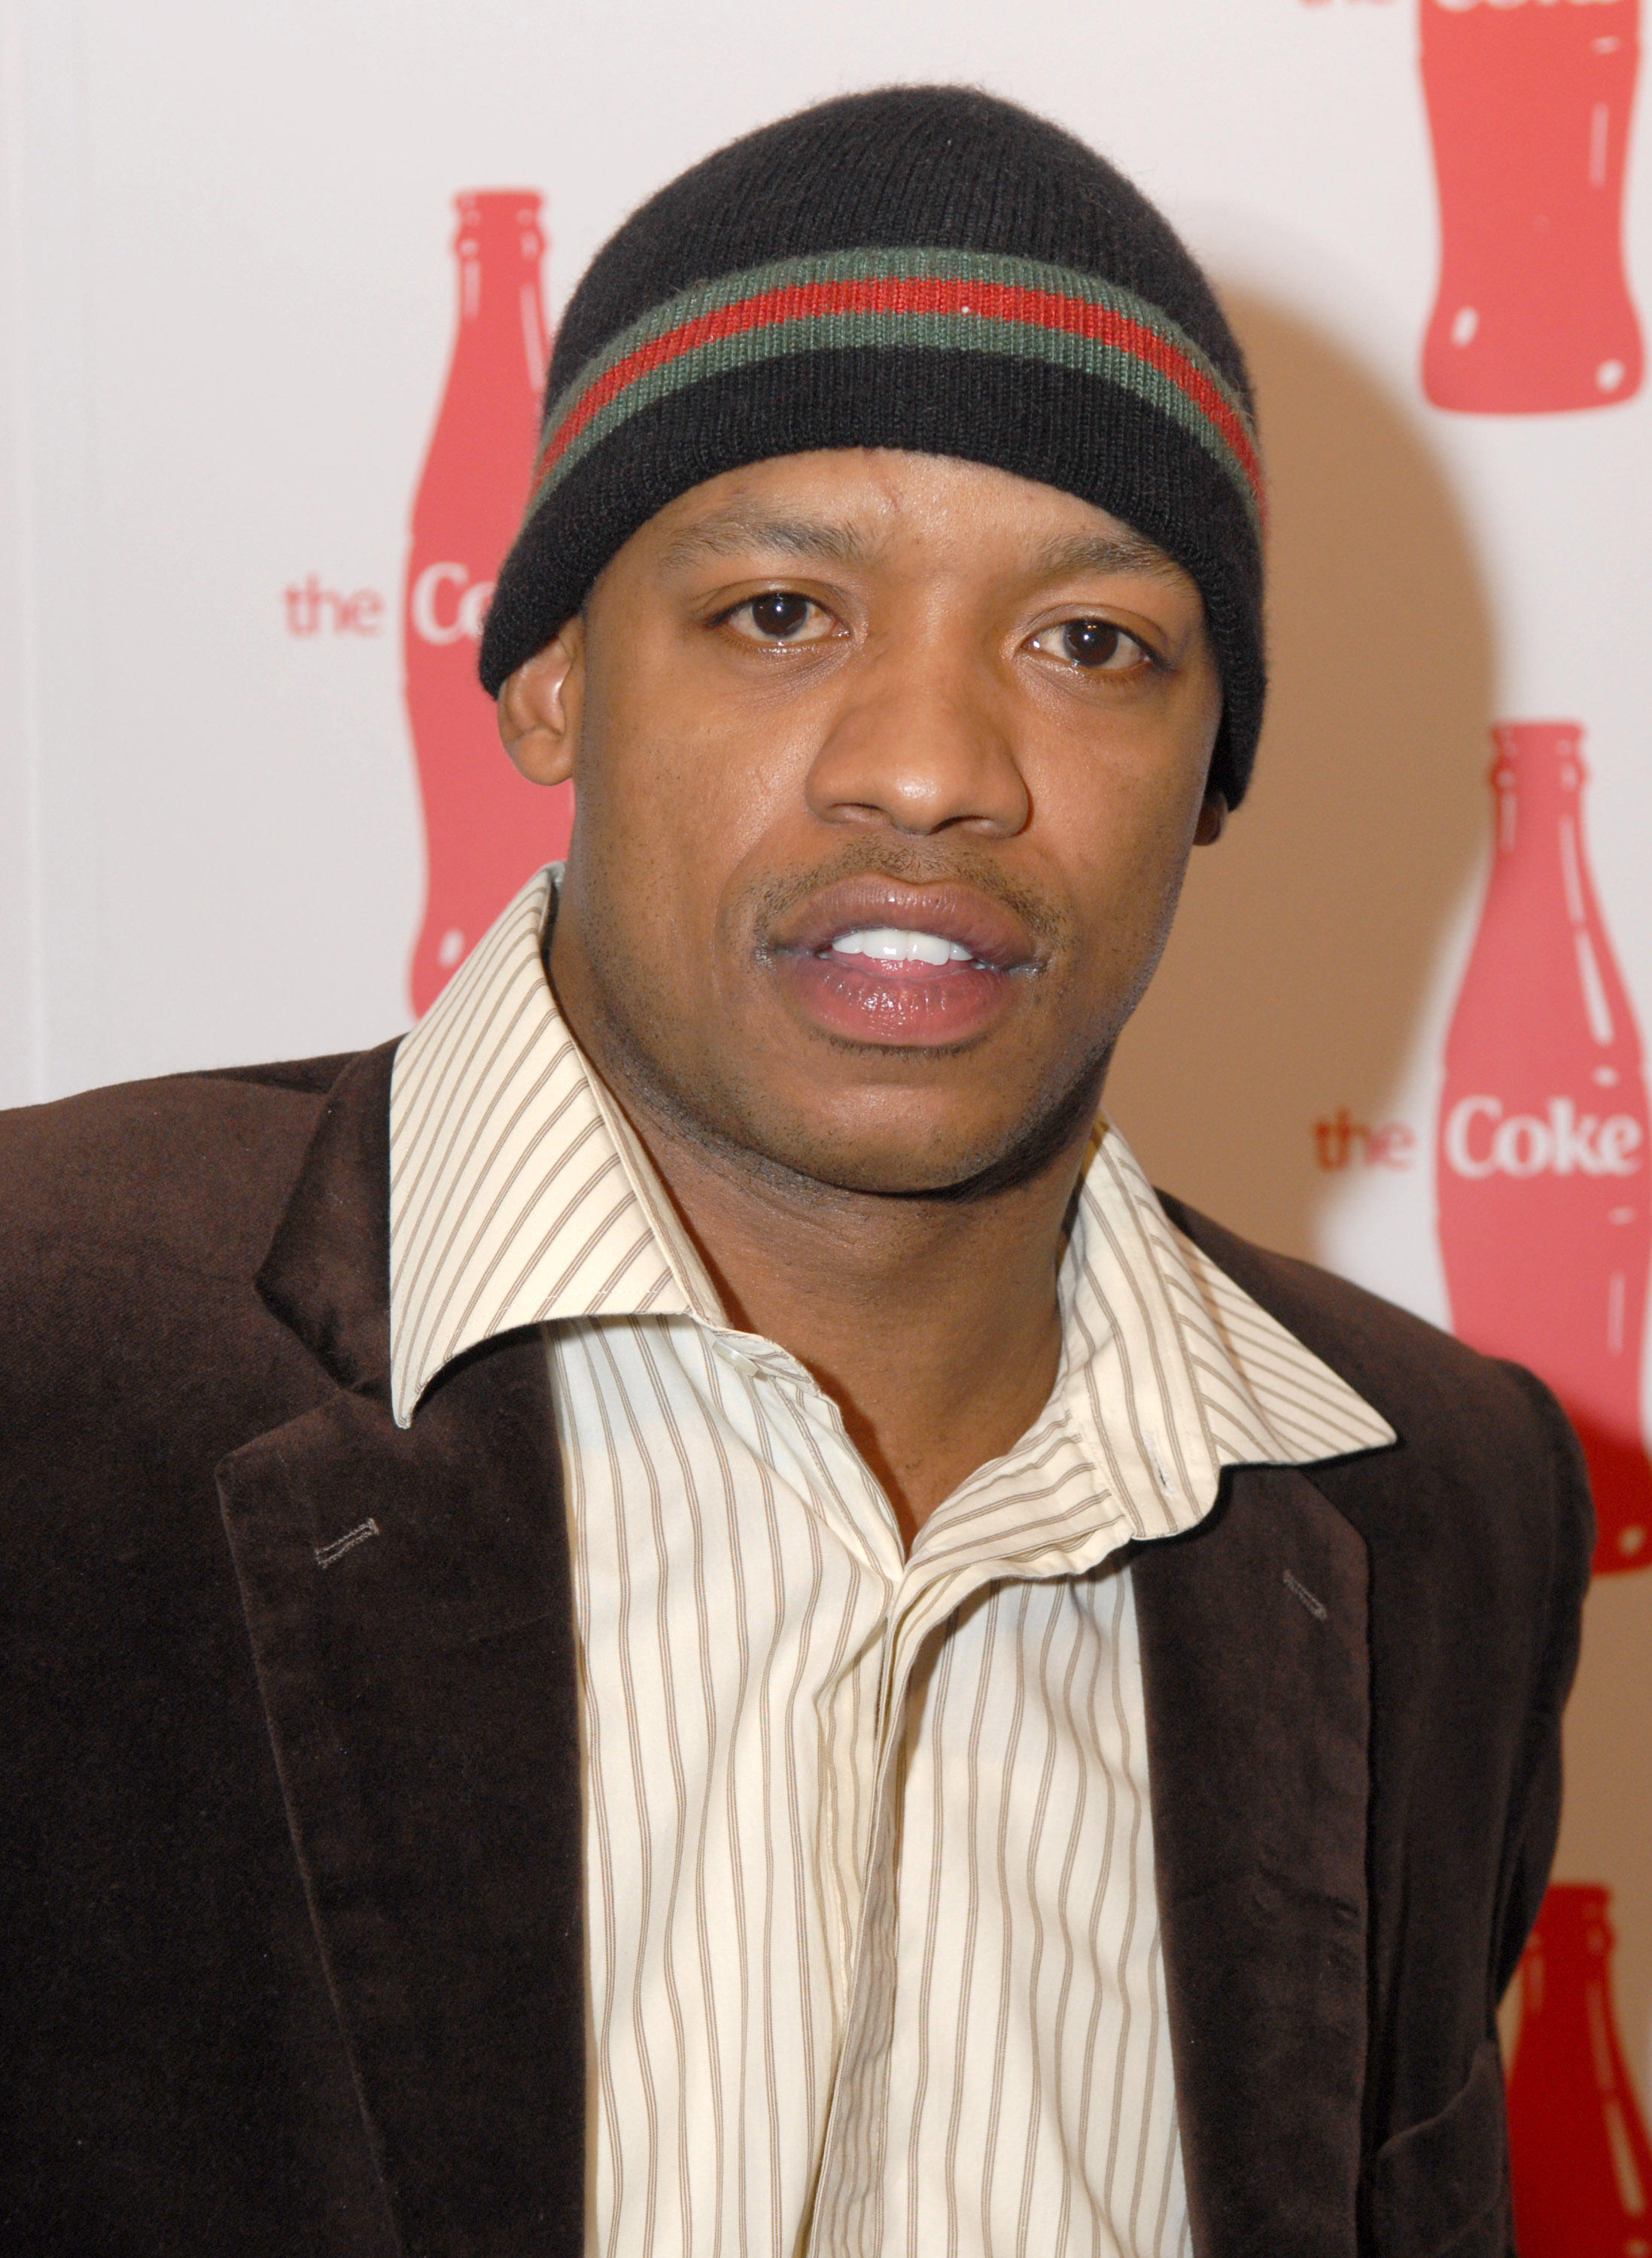 Coca-Cola's 'Coke Side Of Life' Launch Party with a Performance by Ne-Yo - March 30, 2006